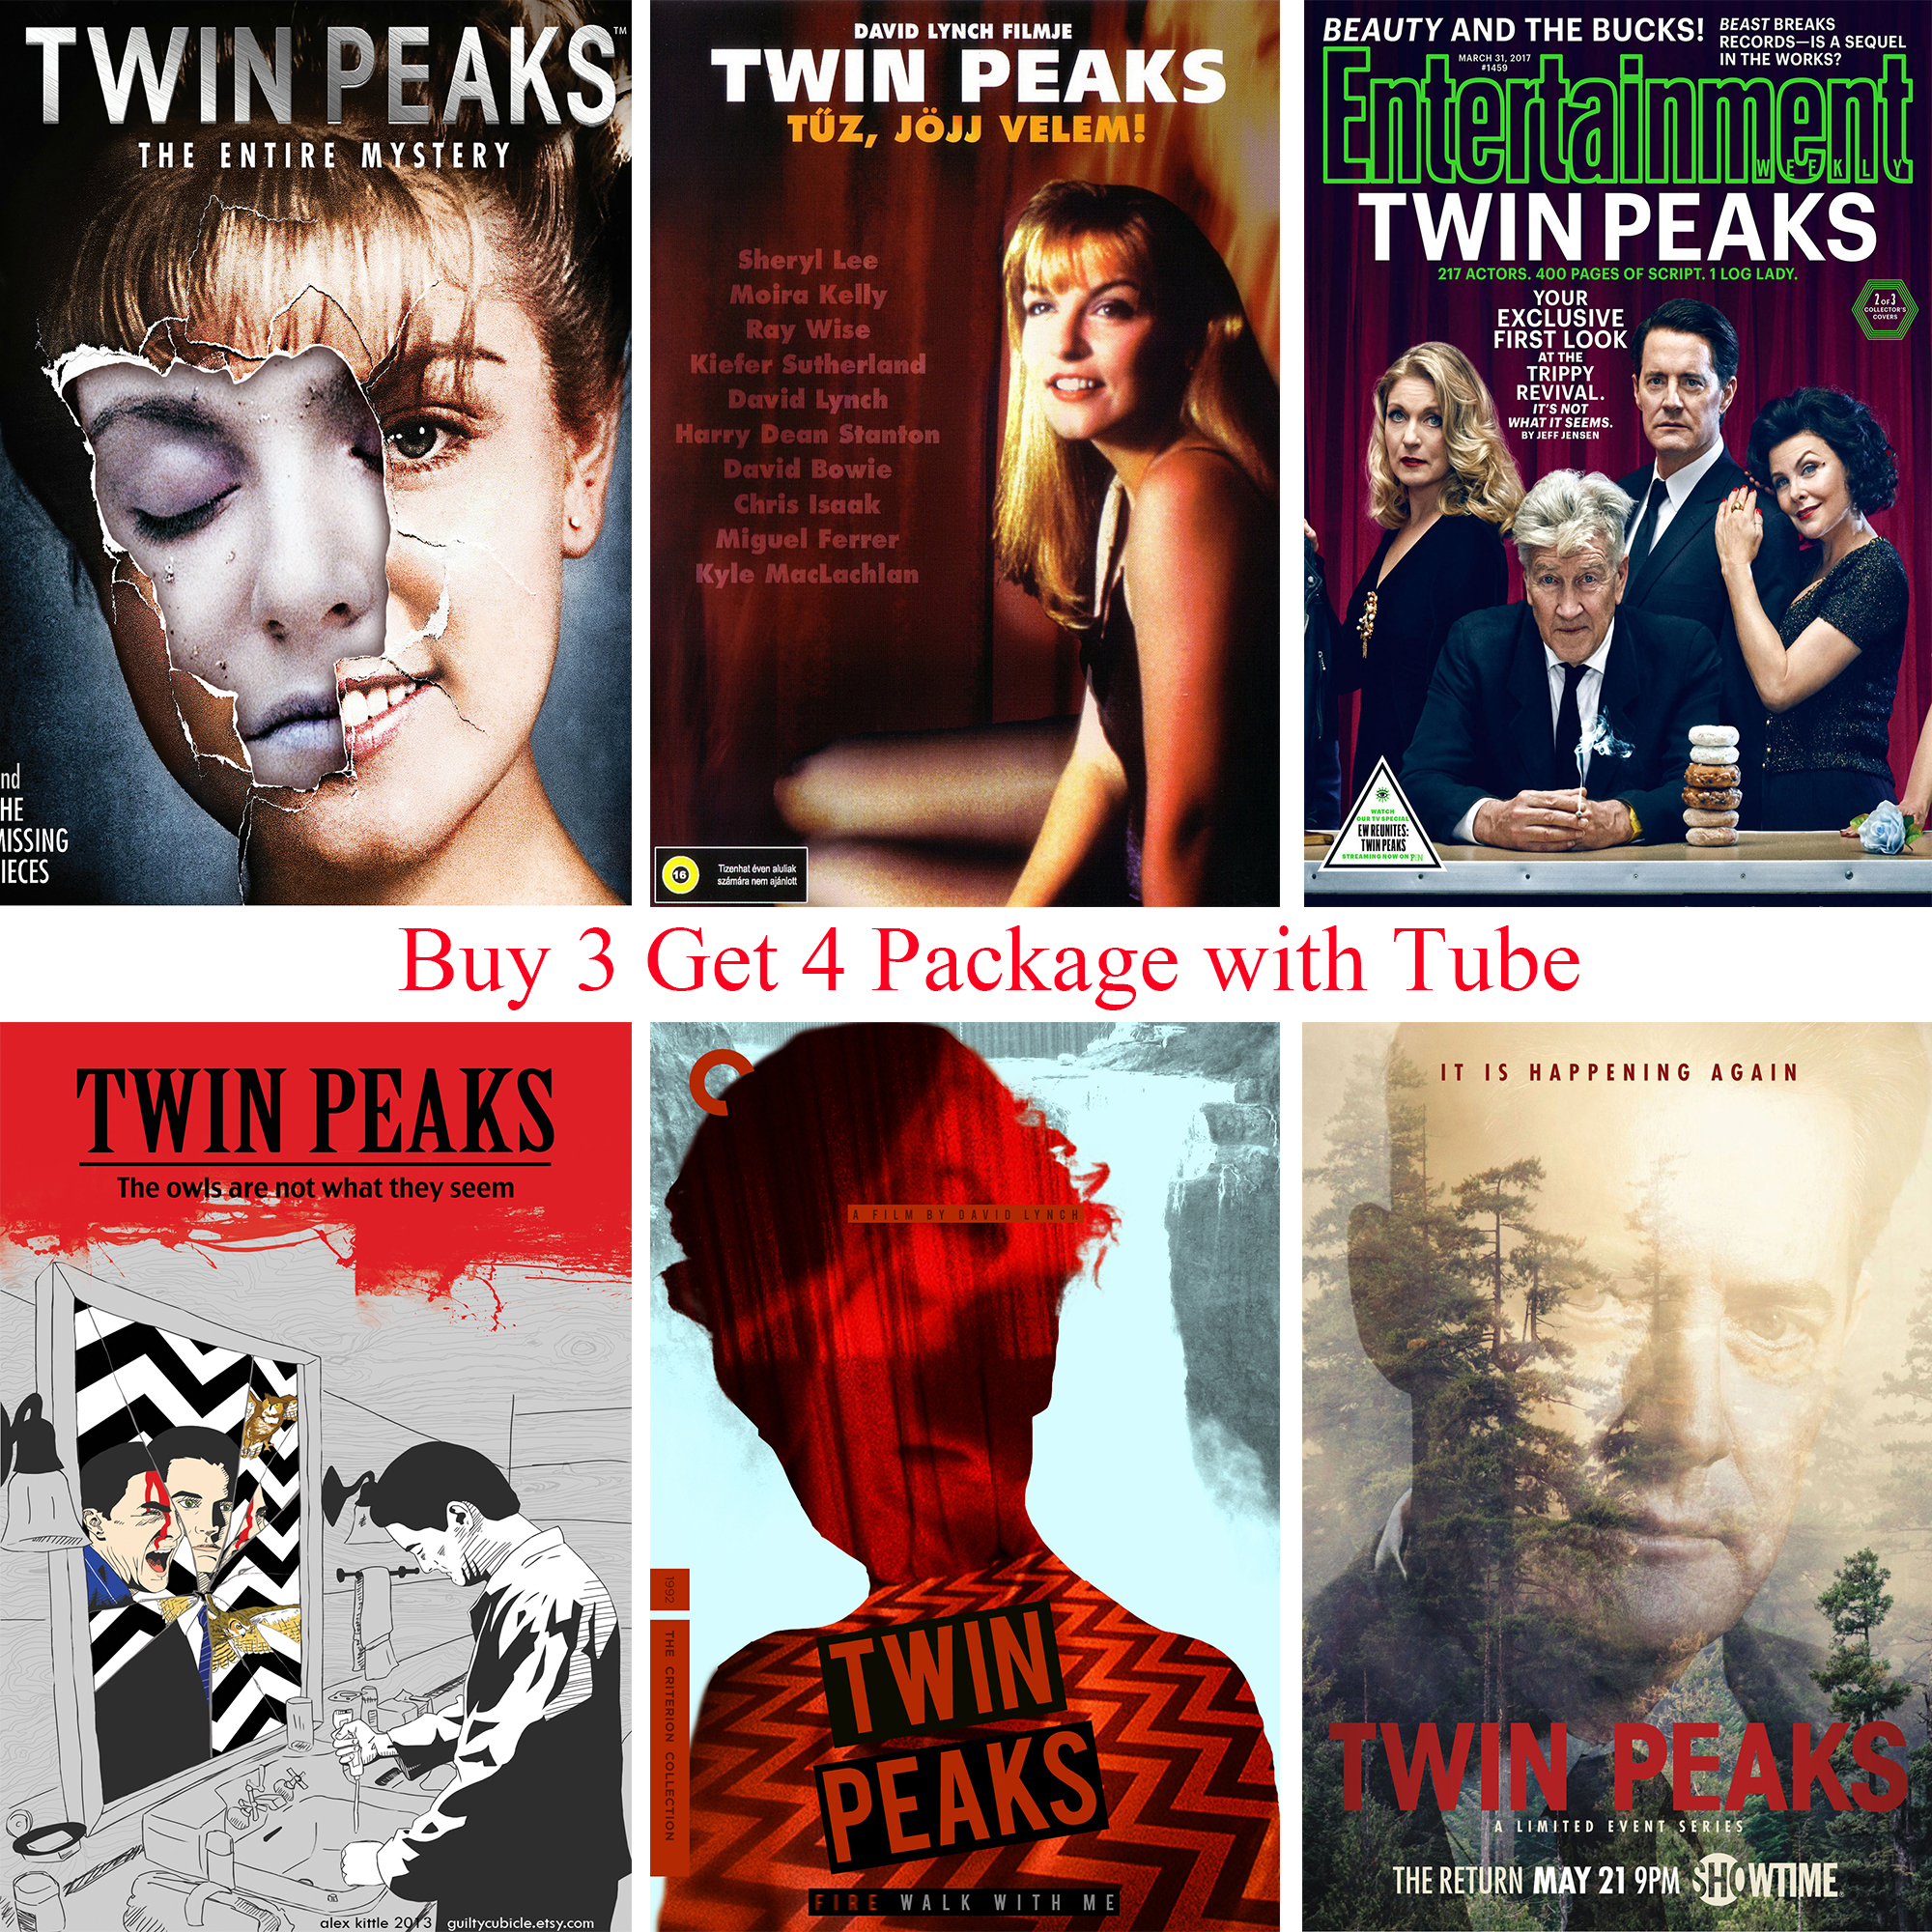 TWIN PEAKS Posters Movie Wall Stickers White Coated Paper Prints Clear Image Home Decoration for Livingroom Bedroom Bar